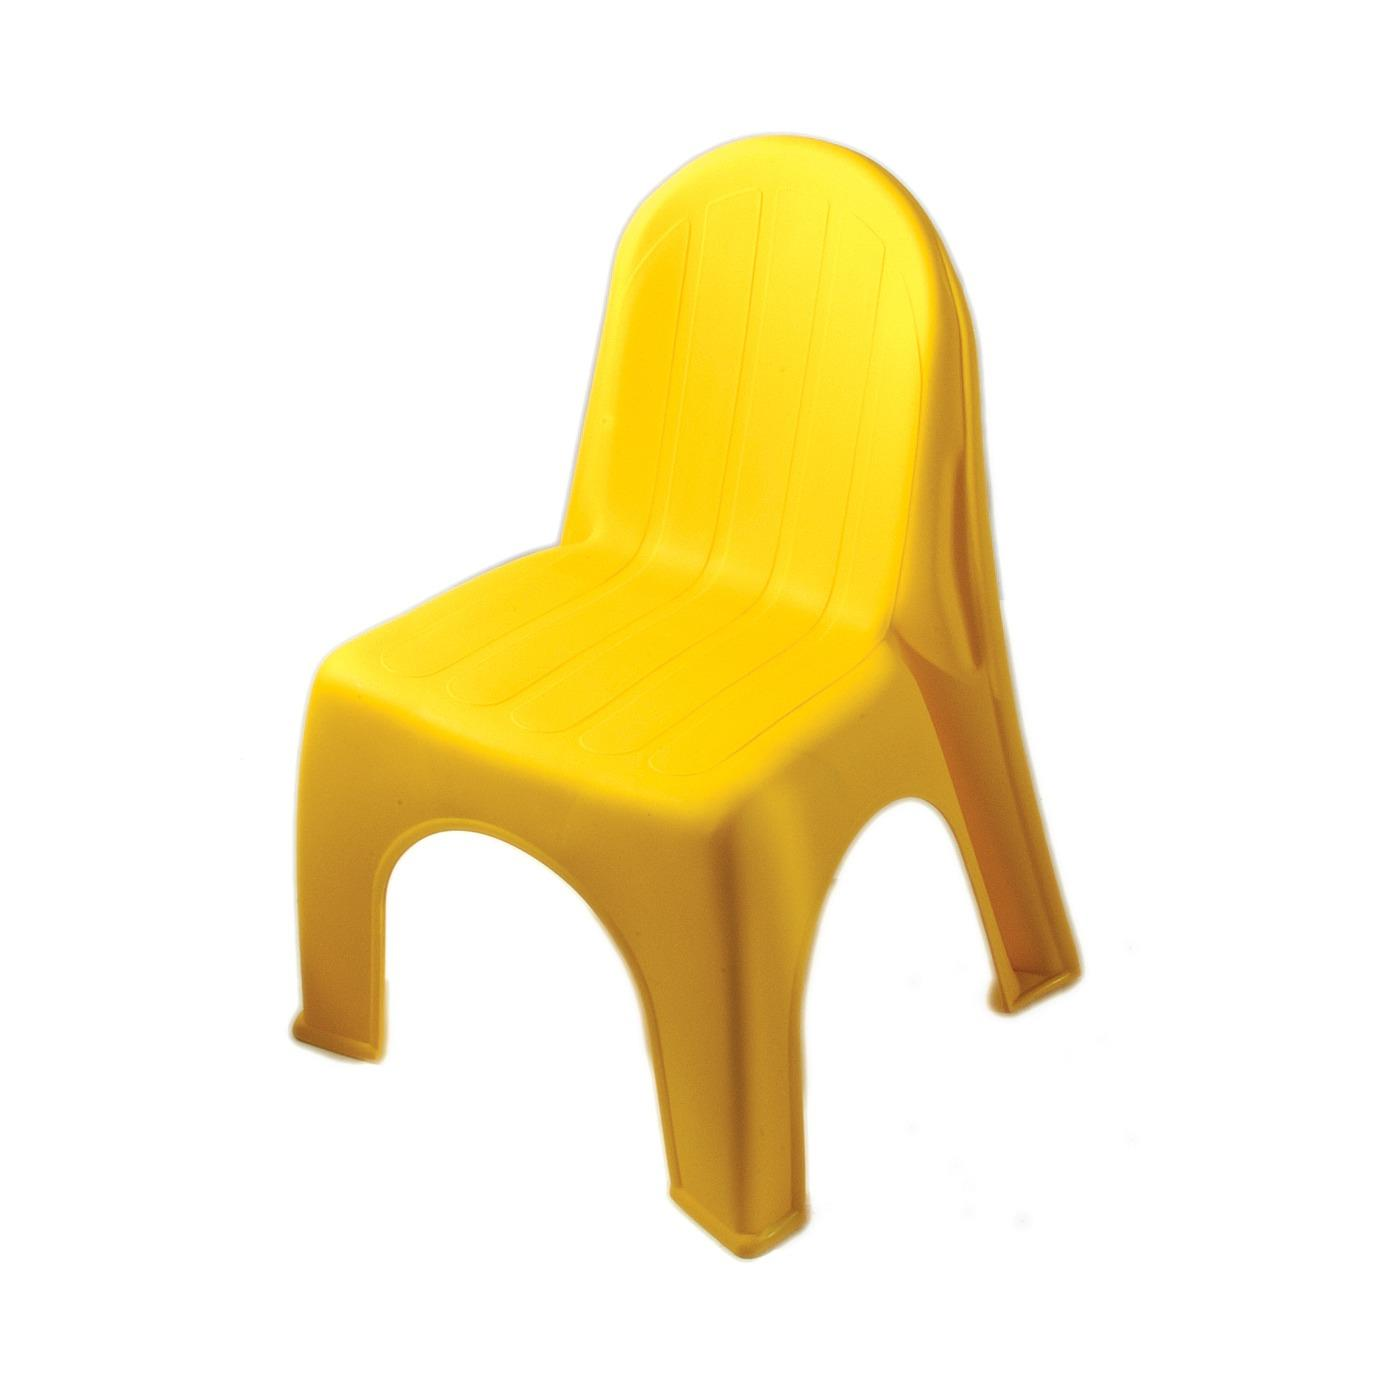 Plastic Children's Chair - Yellow